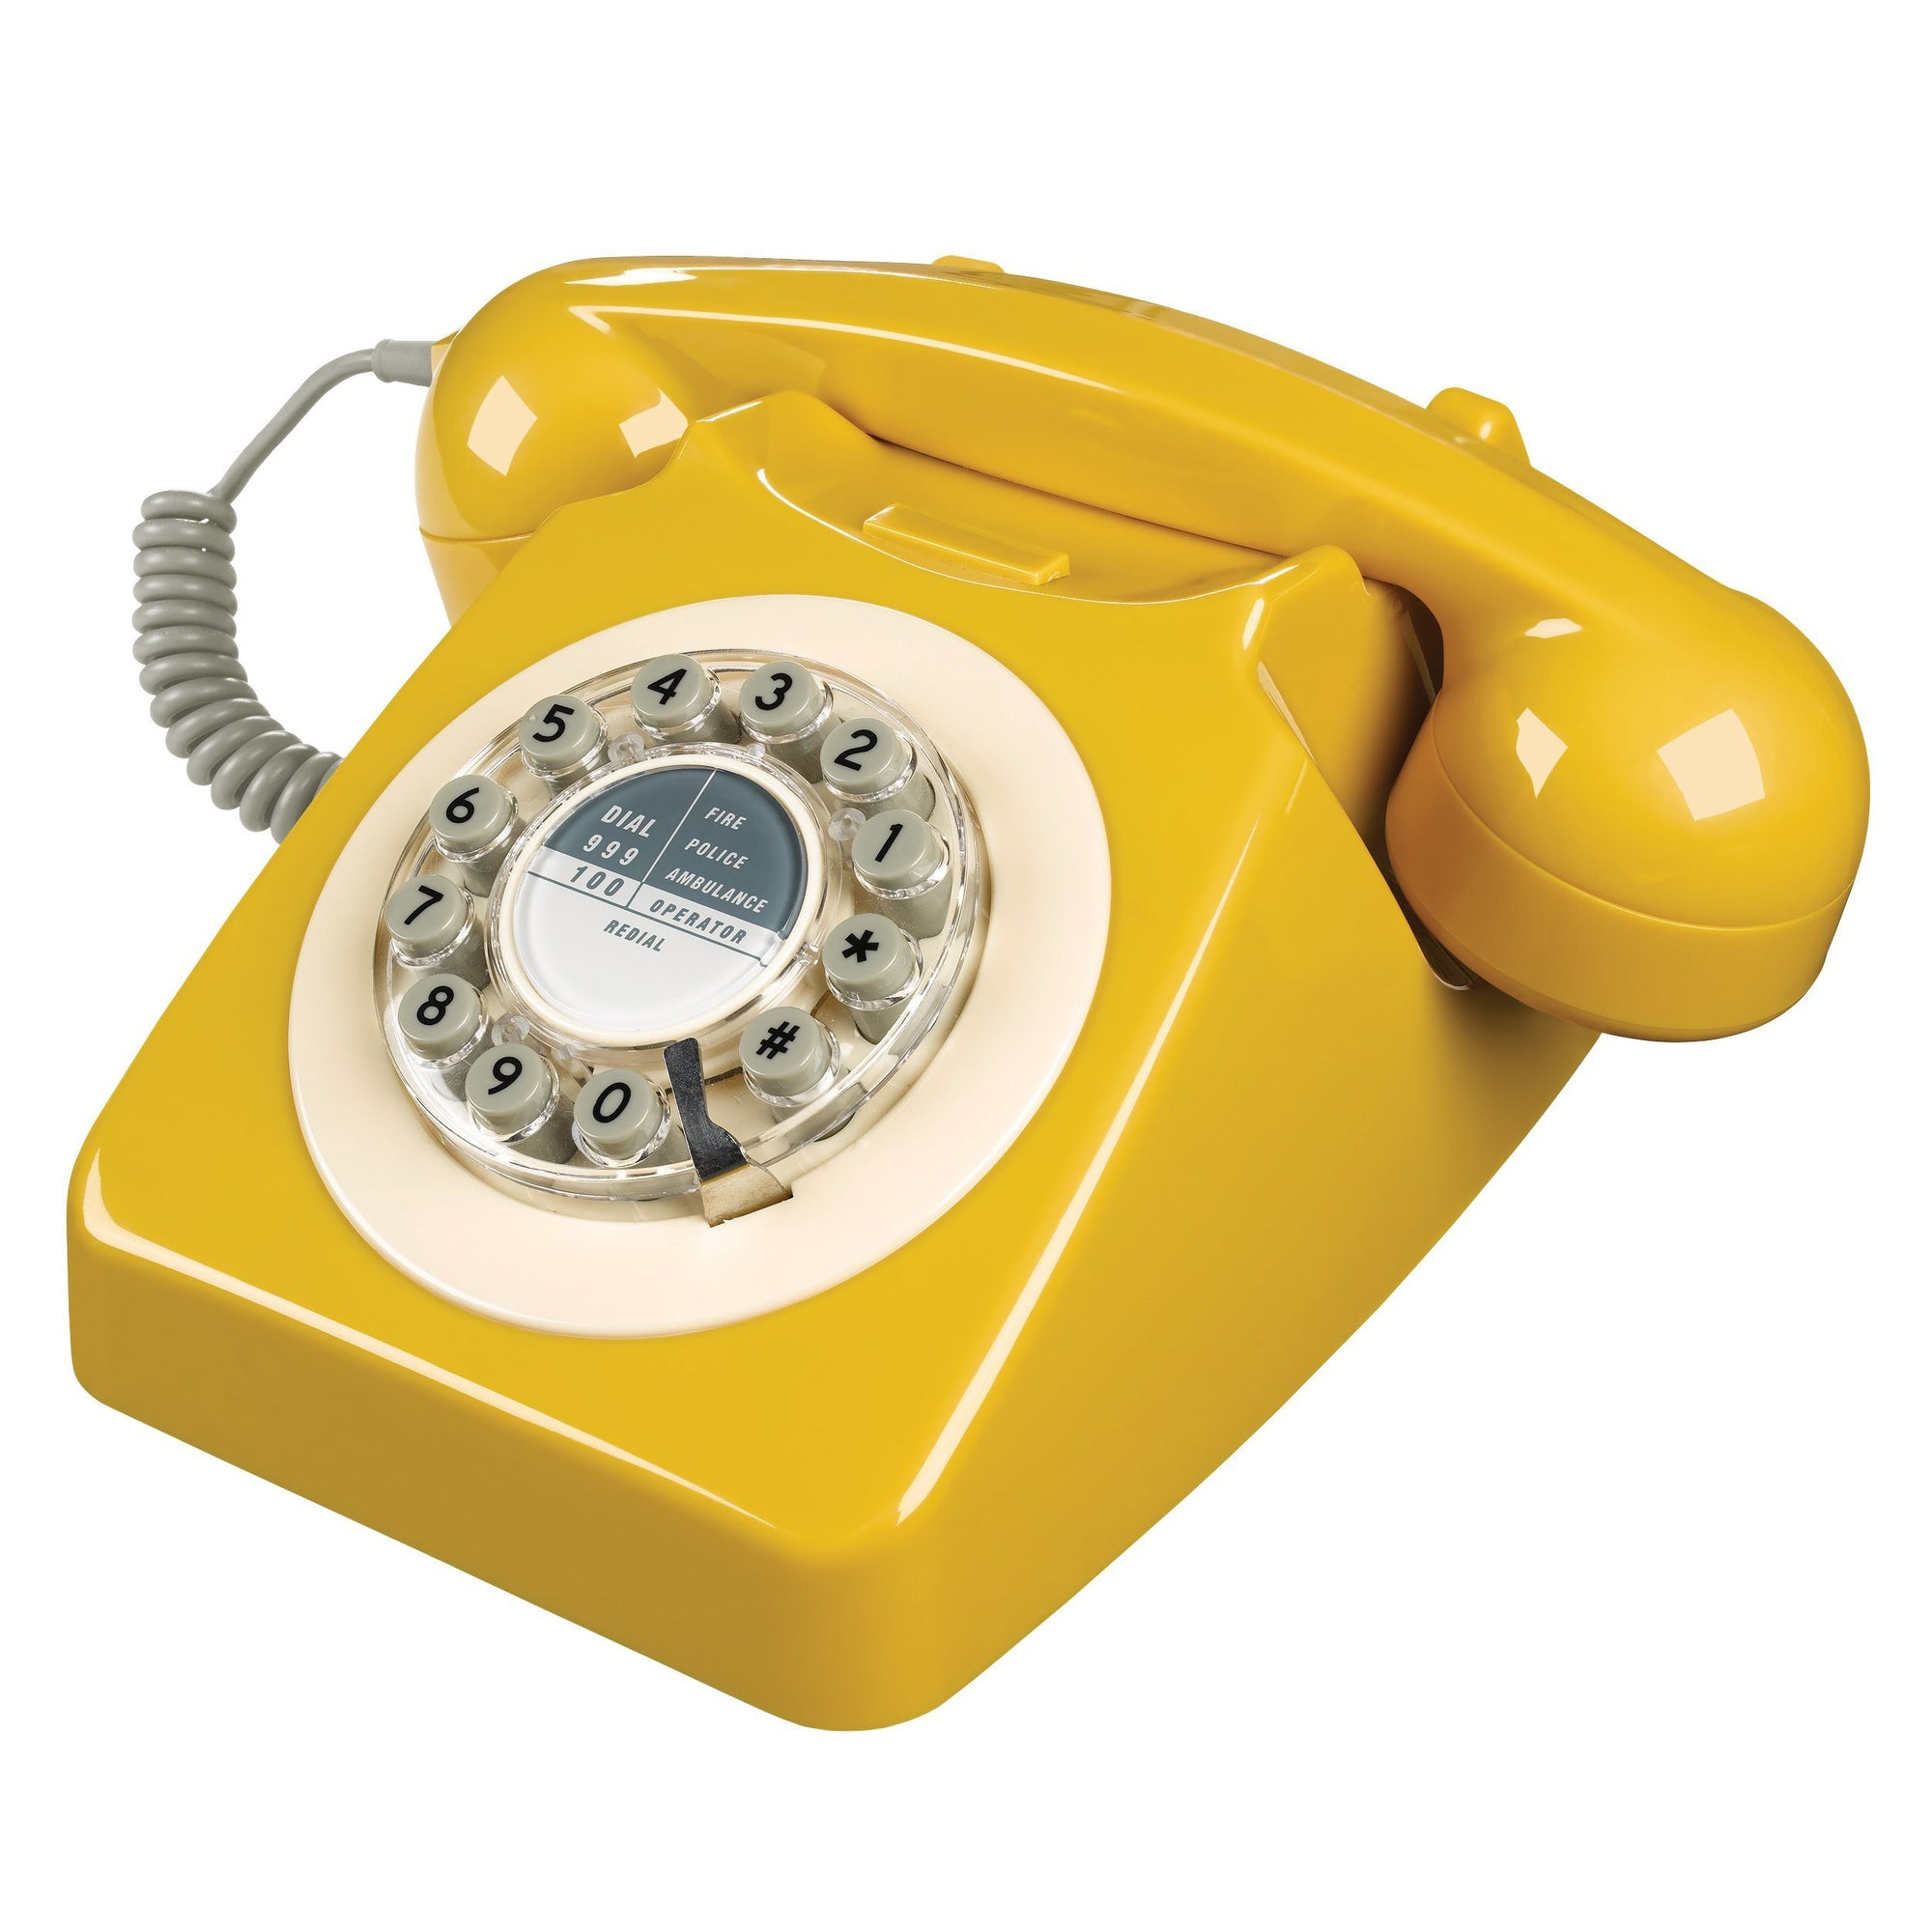 English Mustard 746 Telephone Classic 1960's Design - BouChic